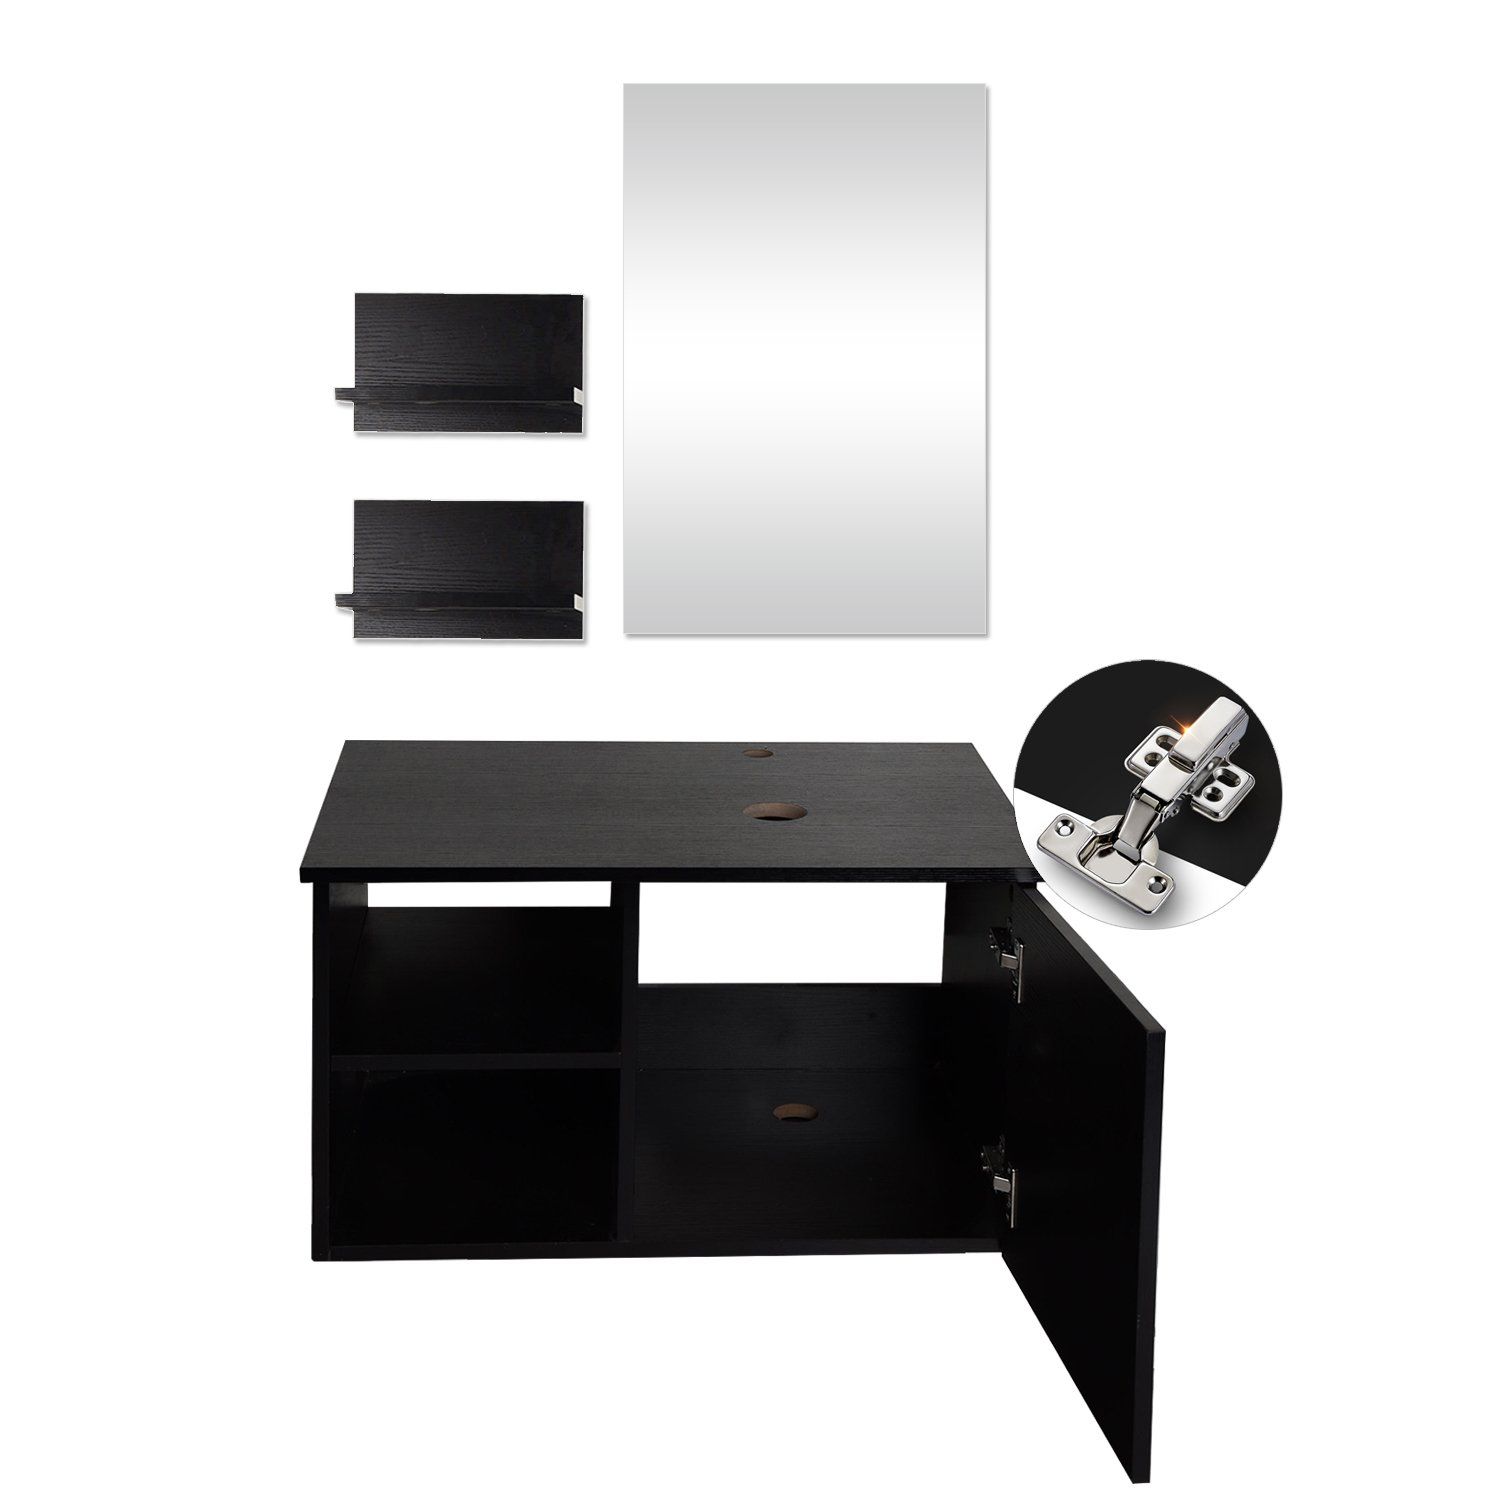 28 Inches Bathroom Vanity Modern Lavatory Wall Mounted Wood Cabinet with Mirror Wood Black Fixture Tempered Glass Sink Top with Single Faucet Hole